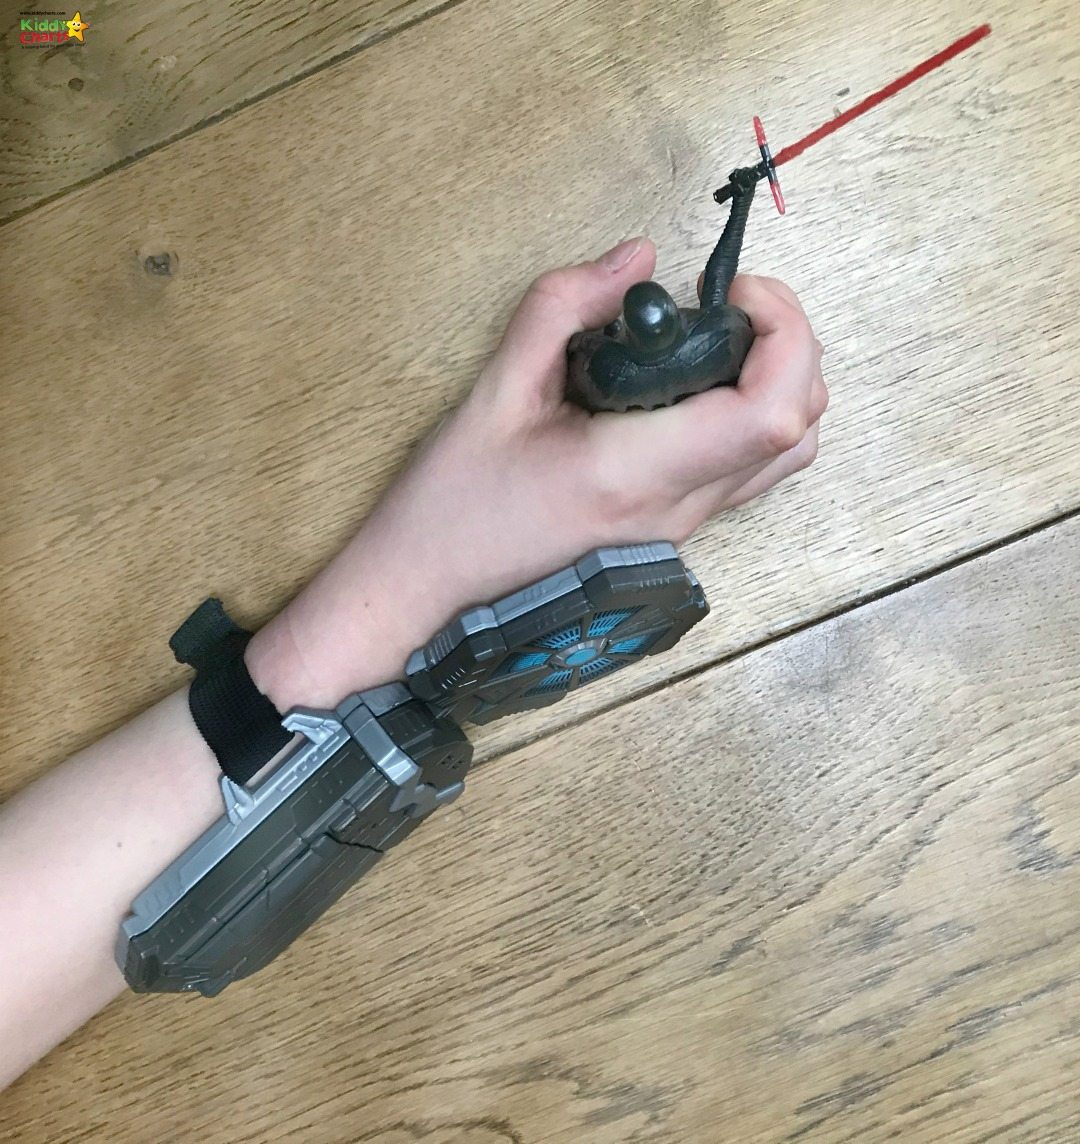 Wearable Force Link tech is a new concept for the Star Wars Last Jedi Toys range - we had a little play with their starter set featuring Kylo Ren.